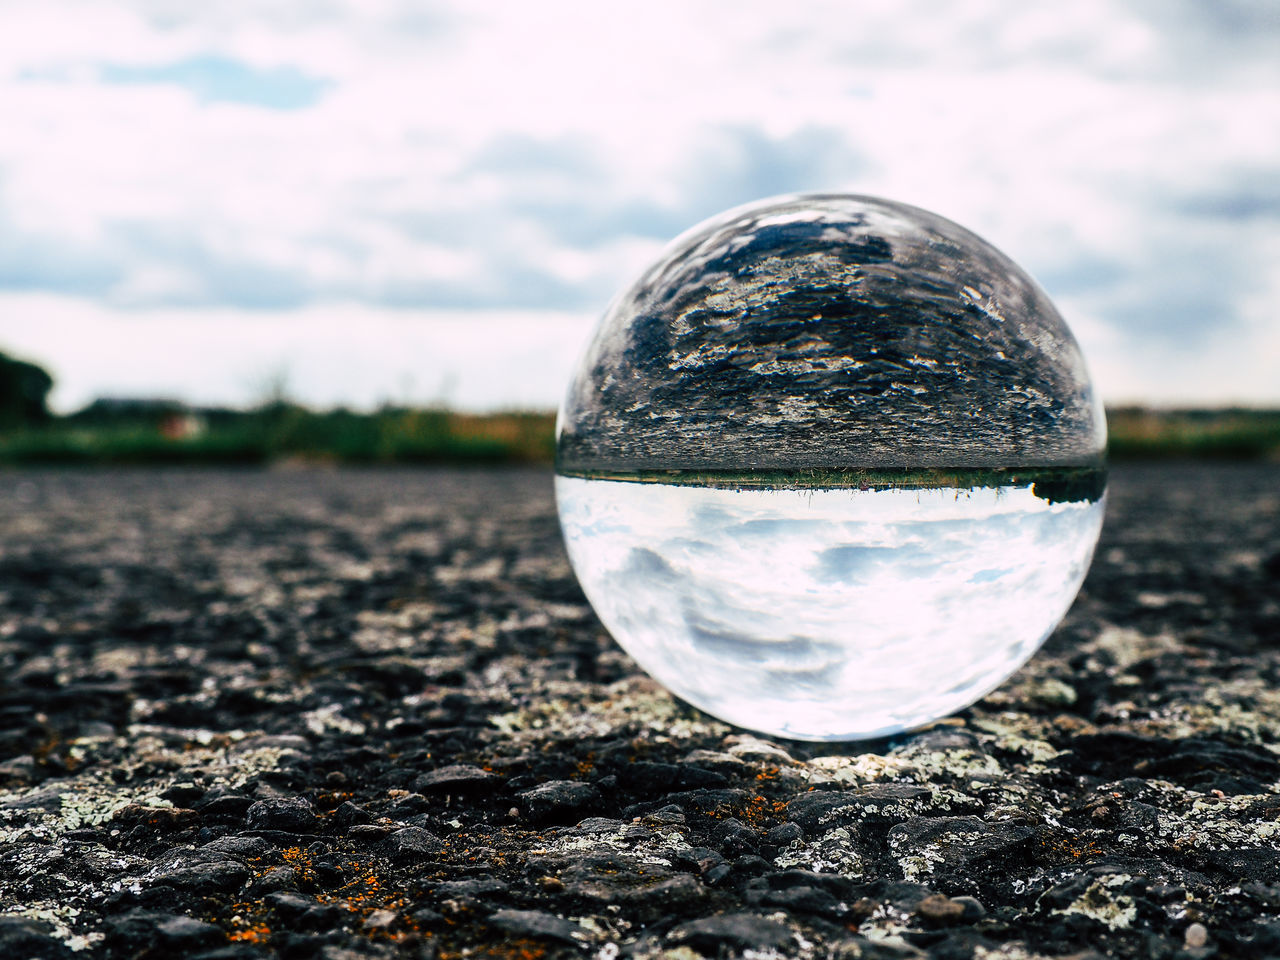 sphere, crystal ball, close-up, reflection, focus on foreground, no people, sky, ball, outdoors, tranquility, crystal, day, nature, landscape, water, fragility